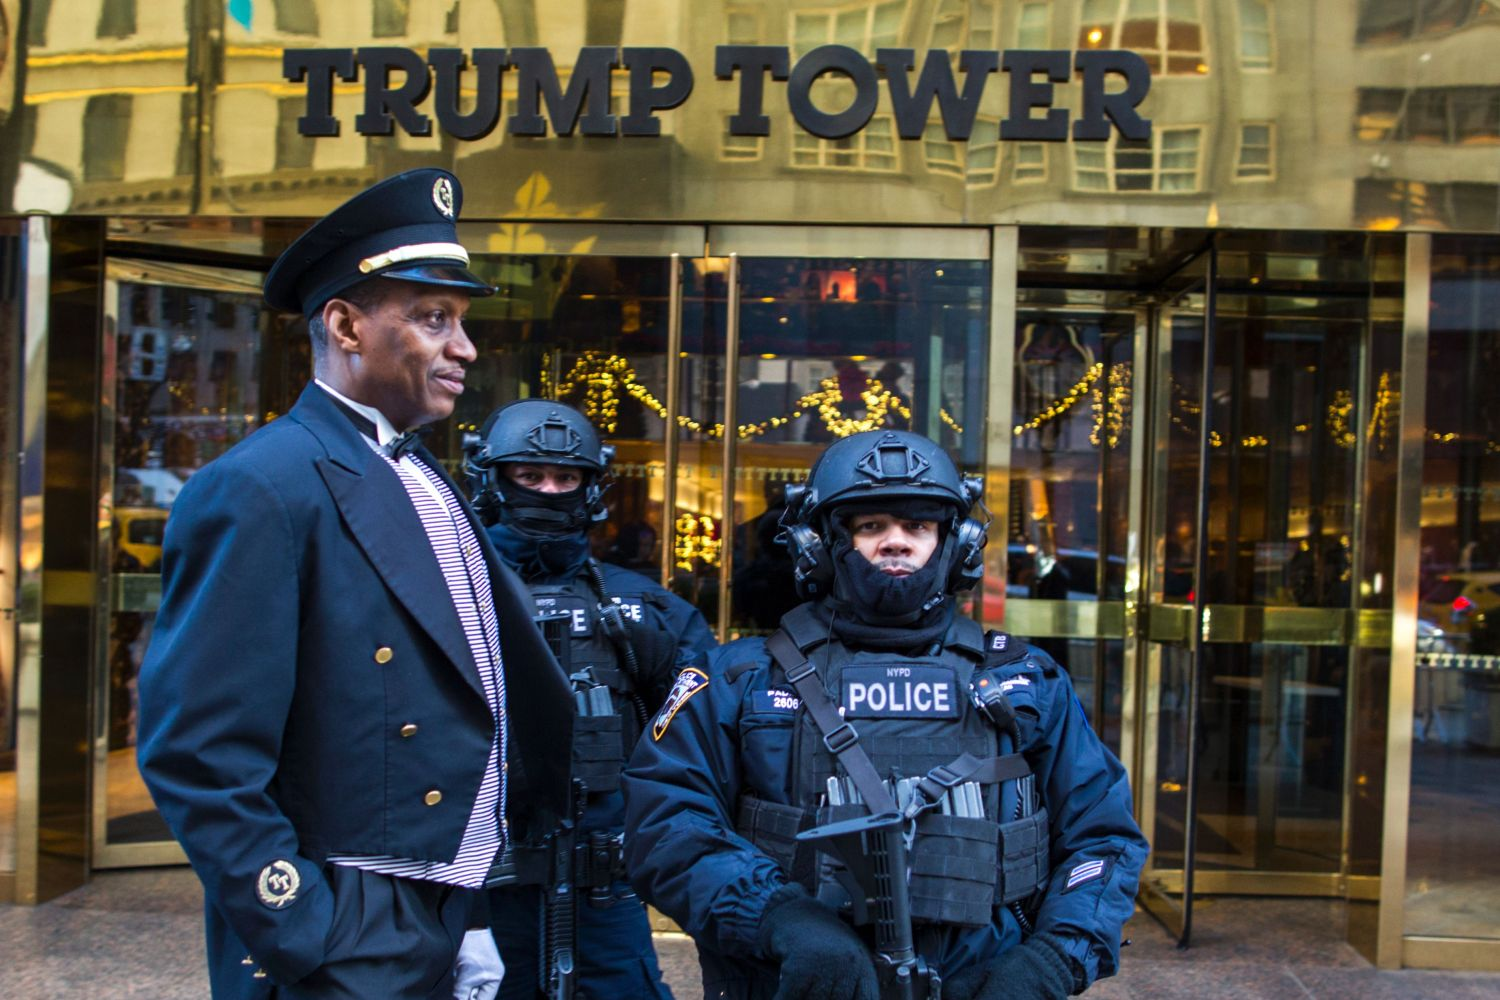 Heavily armed New York City Police officers stand guard at the entrance of Trump Tower on Dec. 15, 2016, in New York. (Eduardo Munoz Alvarez/AFP via Getty Images)